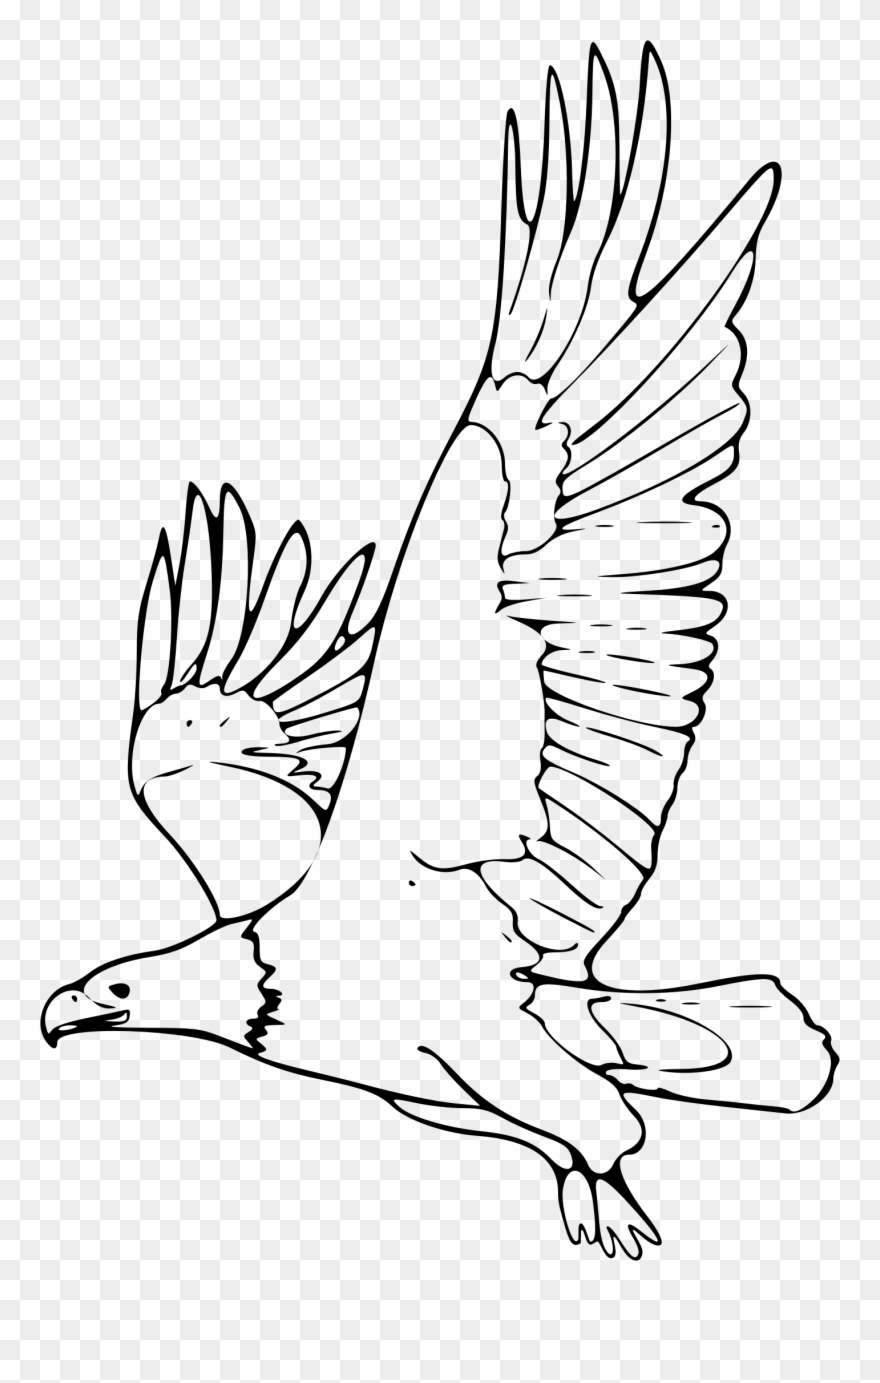 Eagle outline. Bald clipart picture of